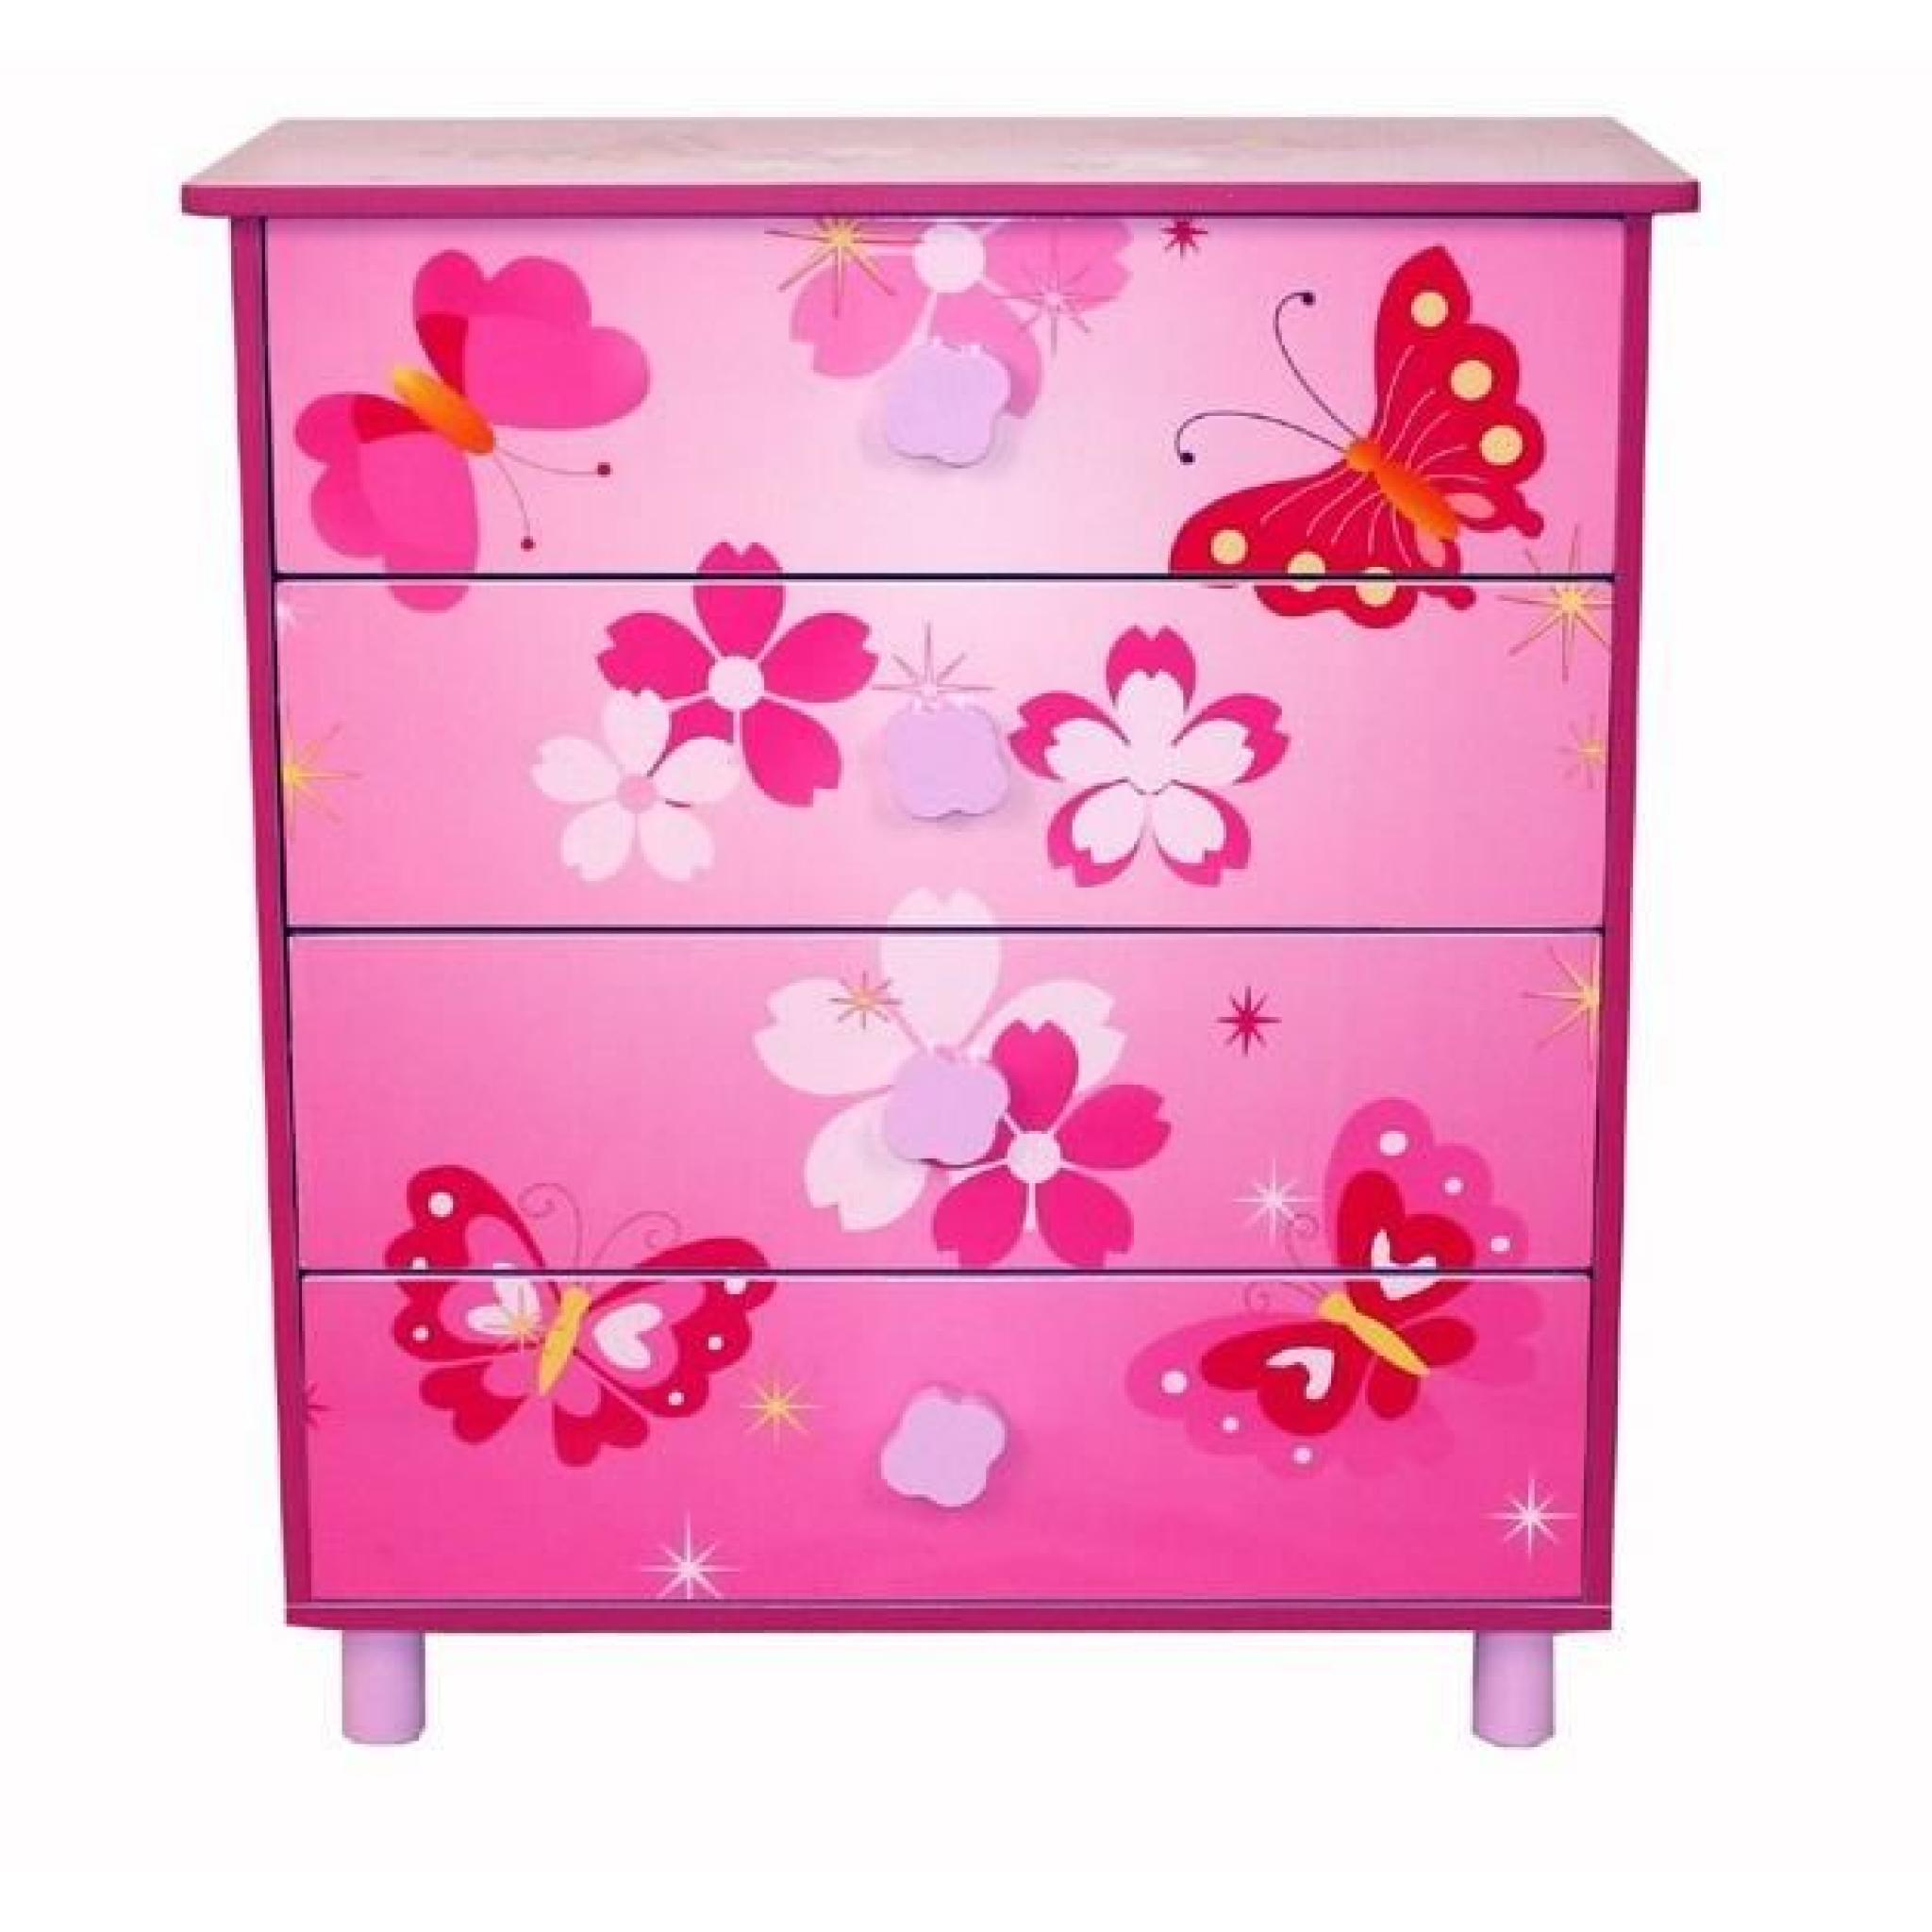 commode 4 tiroirs chambre enfant motif papillon rose achat vente commode pas cher couleur et. Black Bedroom Furniture Sets. Home Design Ideas